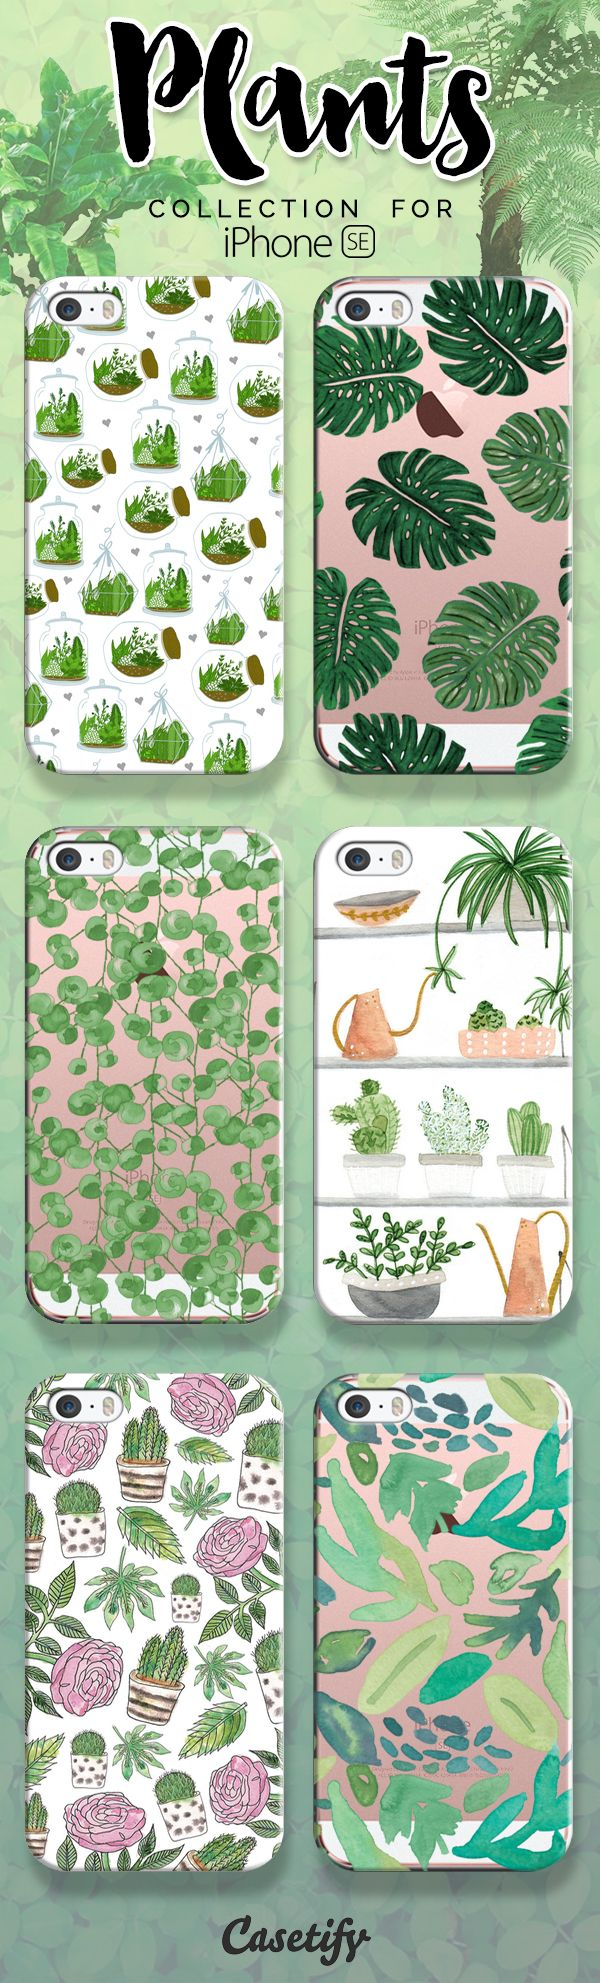 A weed is just a flower in disguise. Shop these #plants cases for iPhone SE here >>> https://www.casetify.com/artworks/lXi7Dv3K3c | @casetify